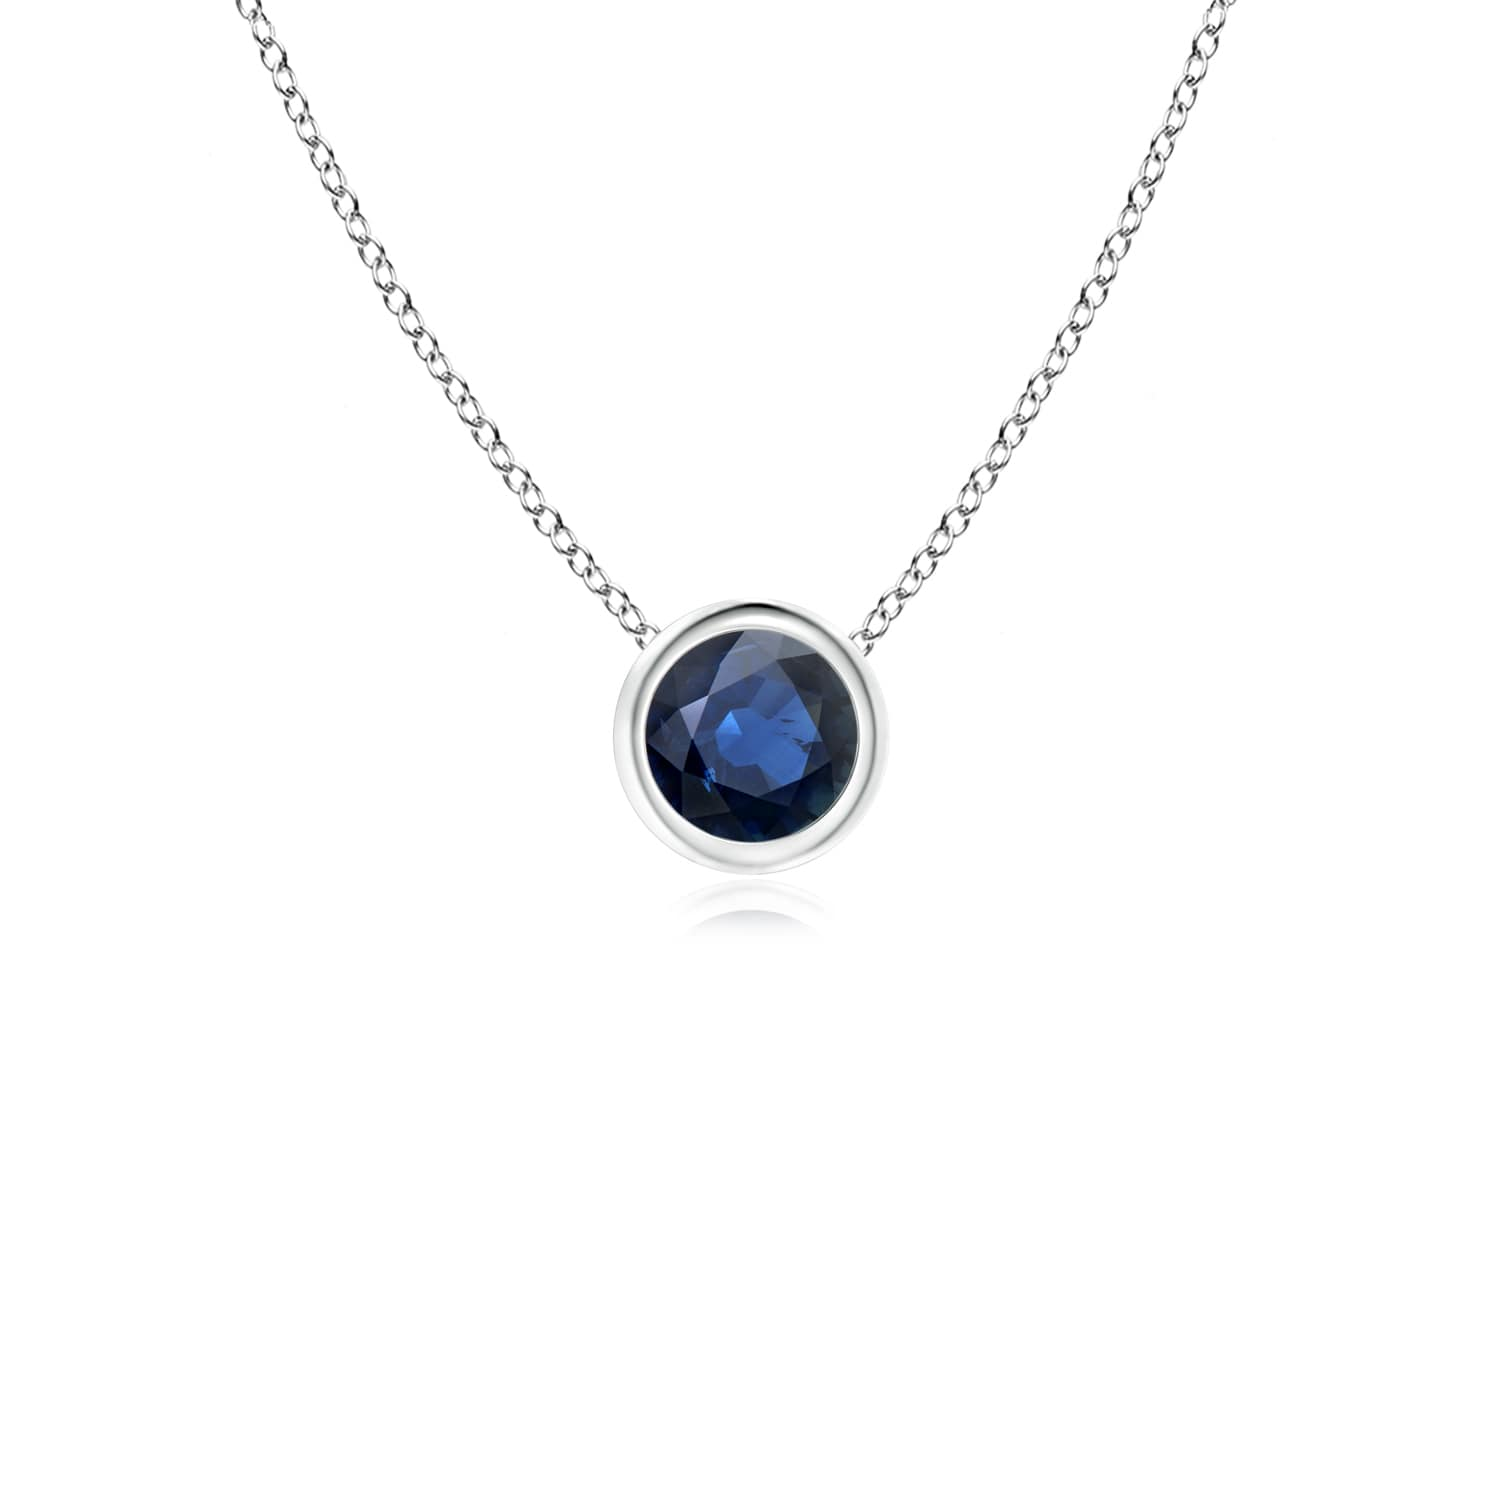 September Birthstone Pendant Necklaces Bezel Set Round Blue Sapphire Solitaire Pendant in 950 Platinum (4mm Blue... by Angara.com